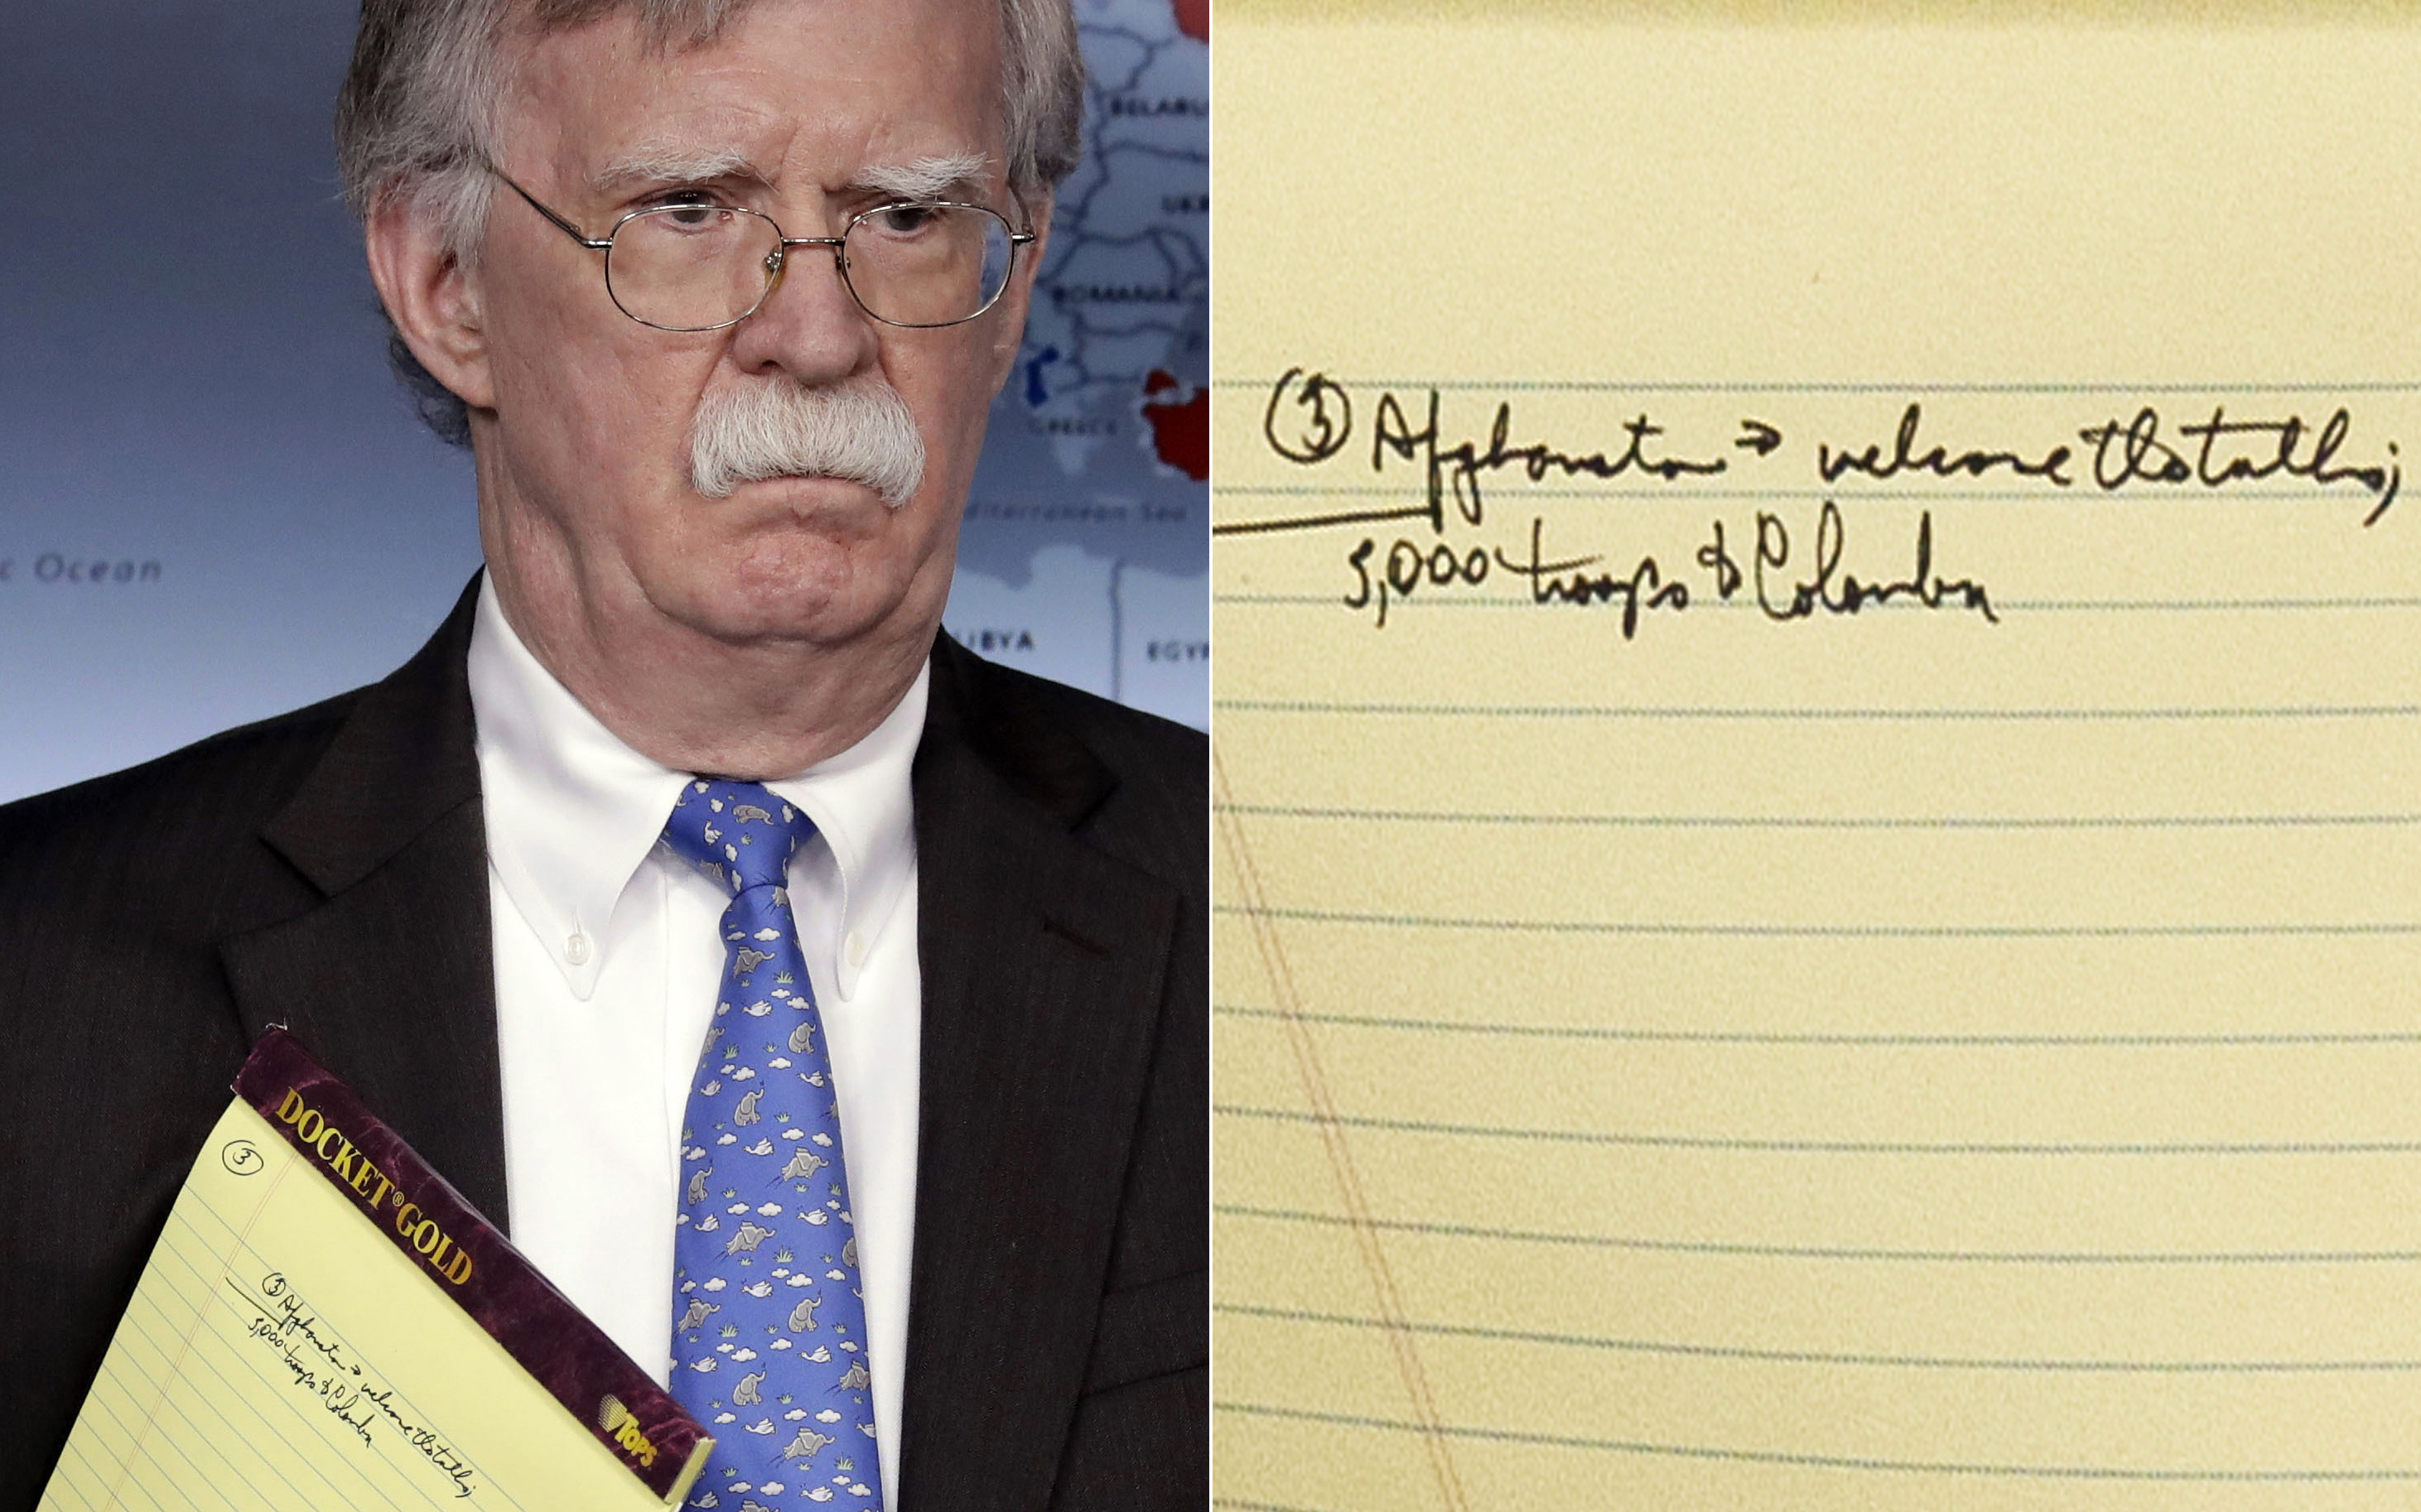 '5,000 troops to Colombia': Bolton's notes raise eyebrows